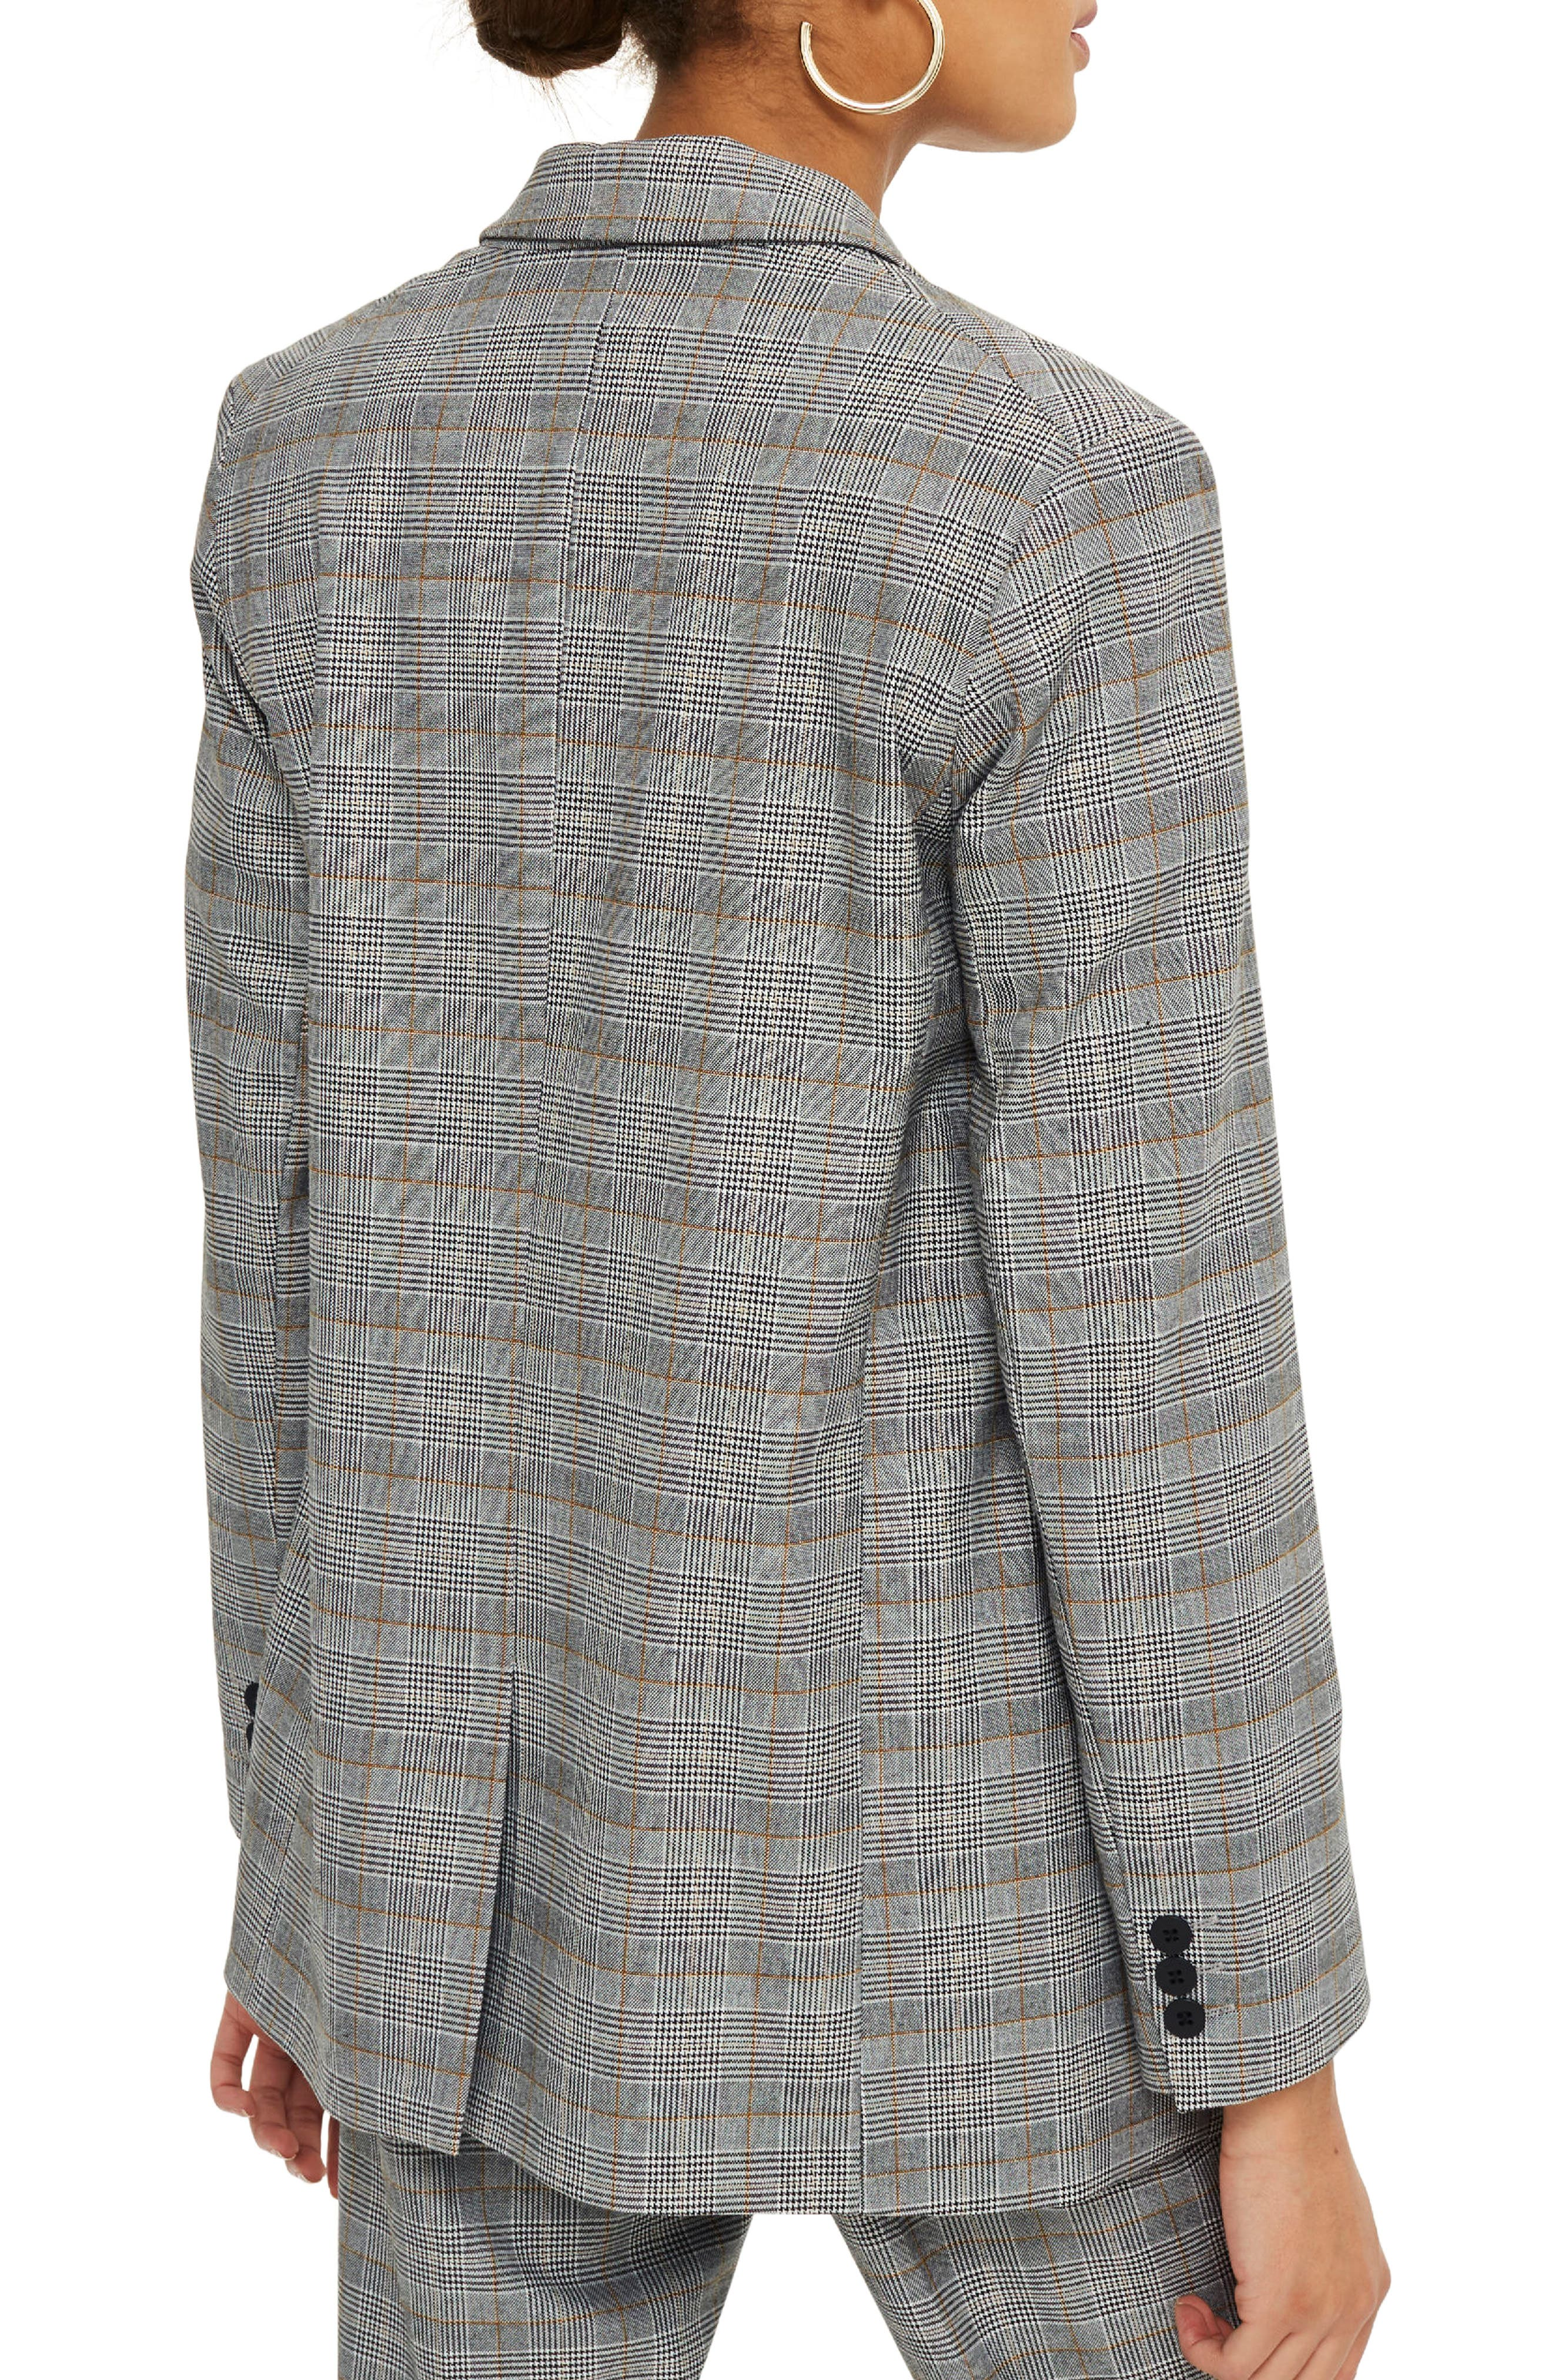 TOPSHOP, Double Breasted Check Jacket, Alternate thumbnail 2, color, 020